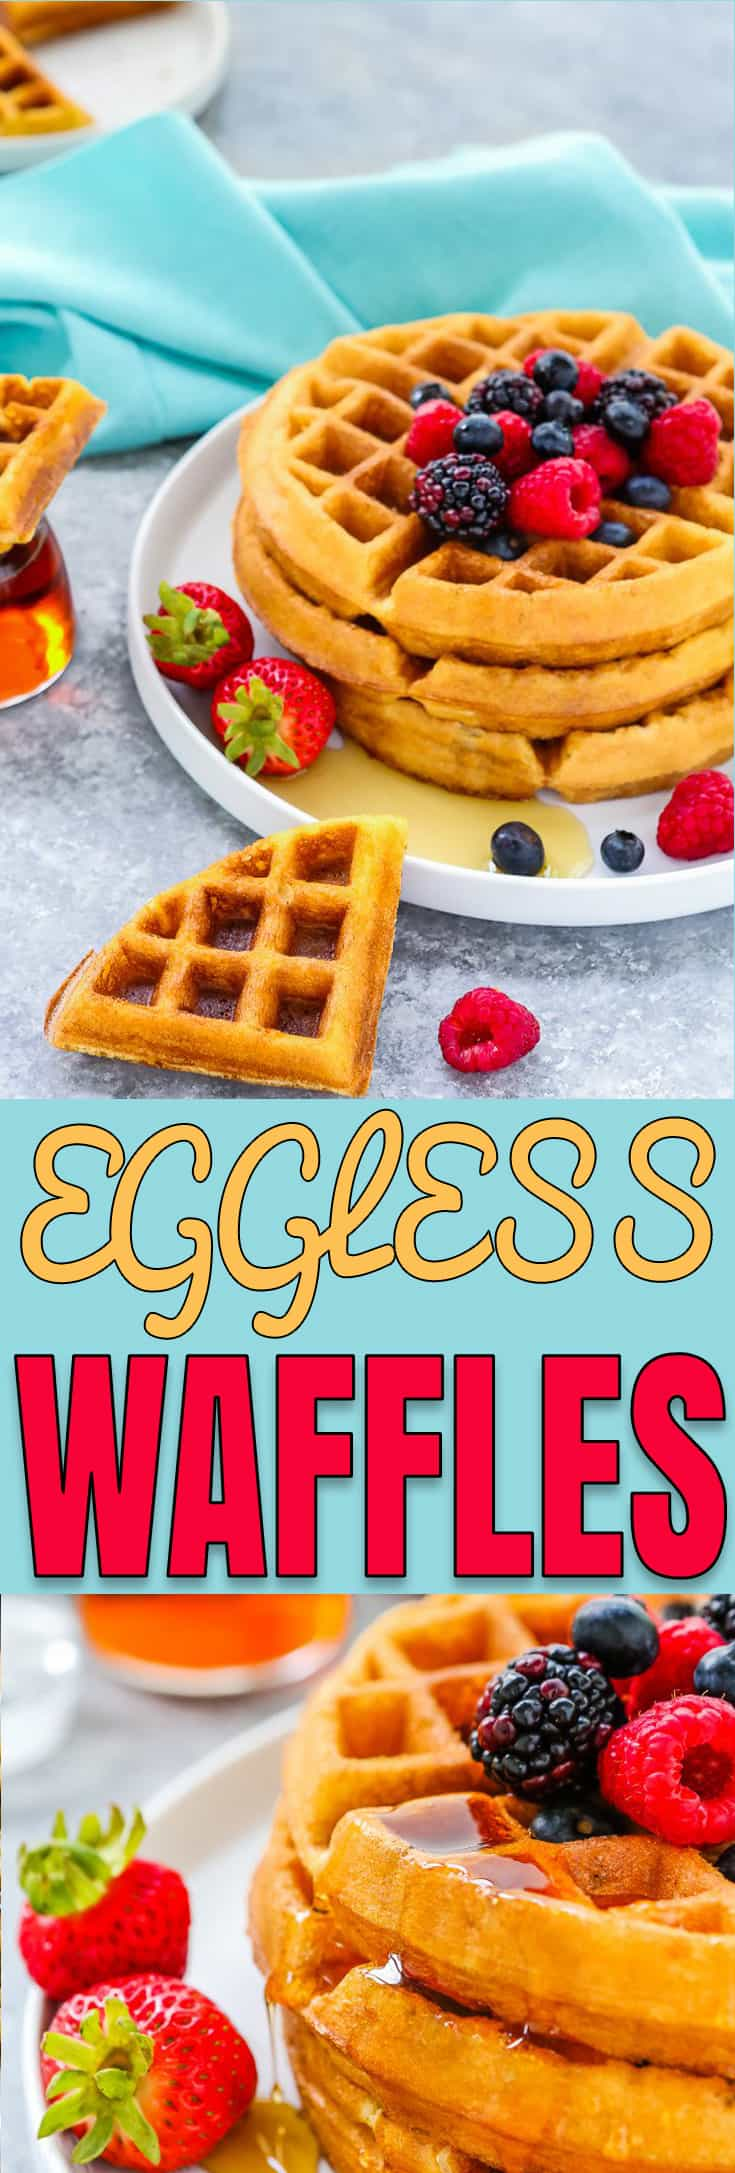 This is my staple recipe for golden and buttery Eggless Waffles! They're perfectly crispy on the outside and fluffy on the inside. This recipe has no eggs…and you won't even notice a difference! https://mommyshomecooking.com